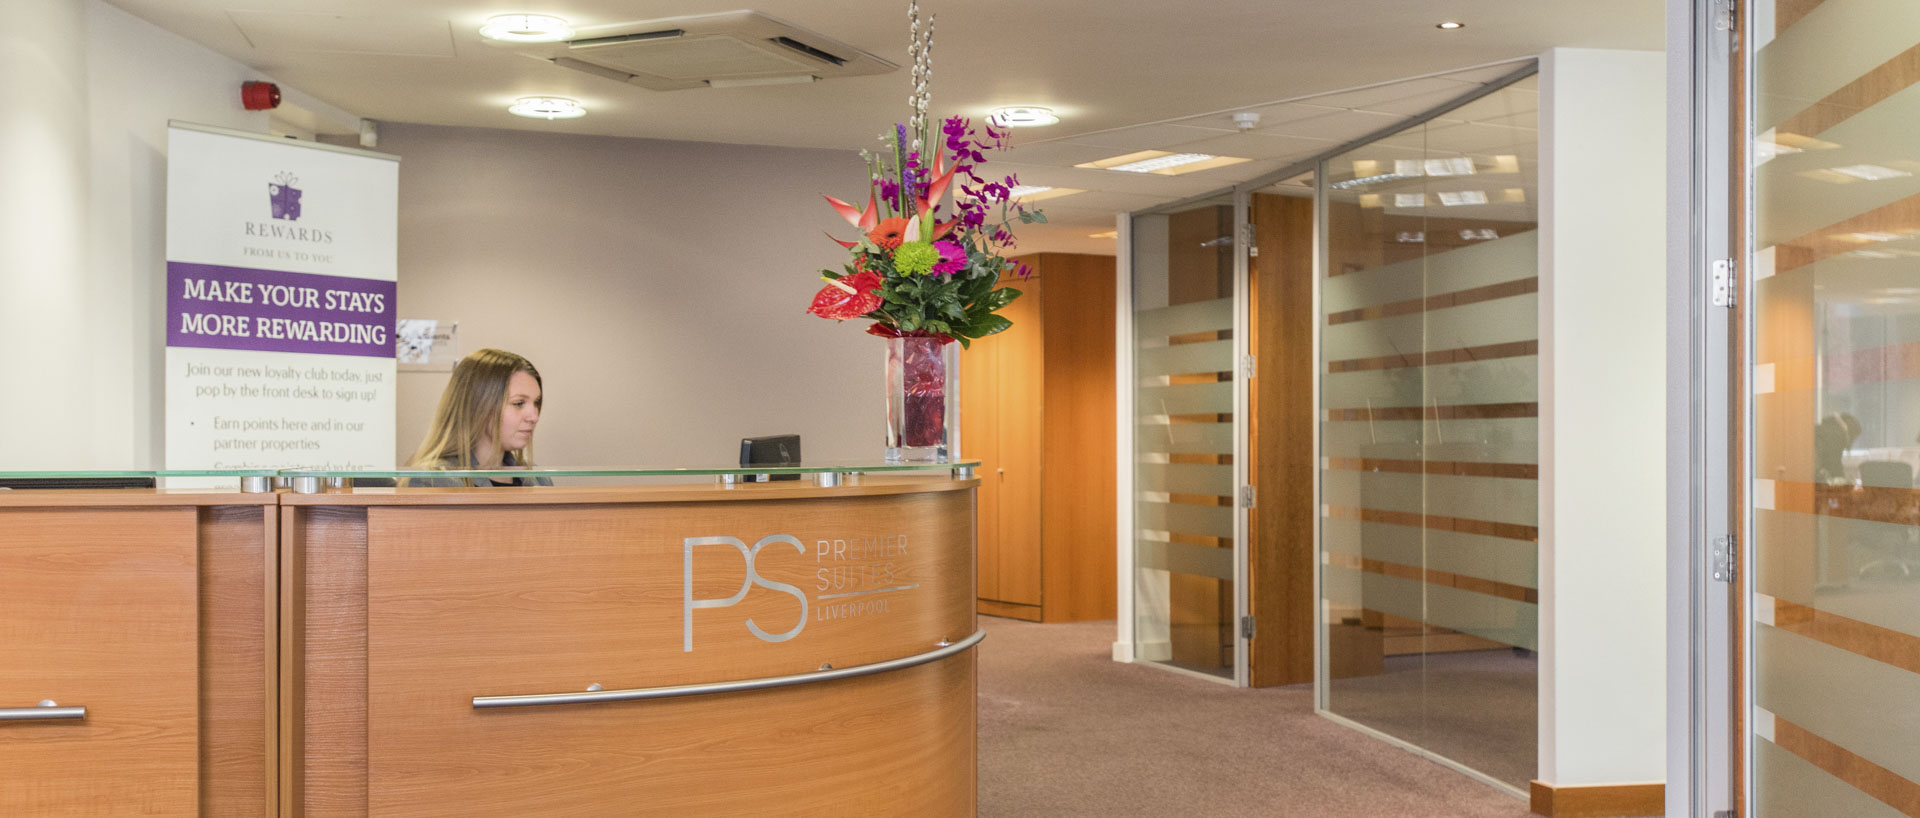 PREMIER SUITES Liverpool corporate guests reception